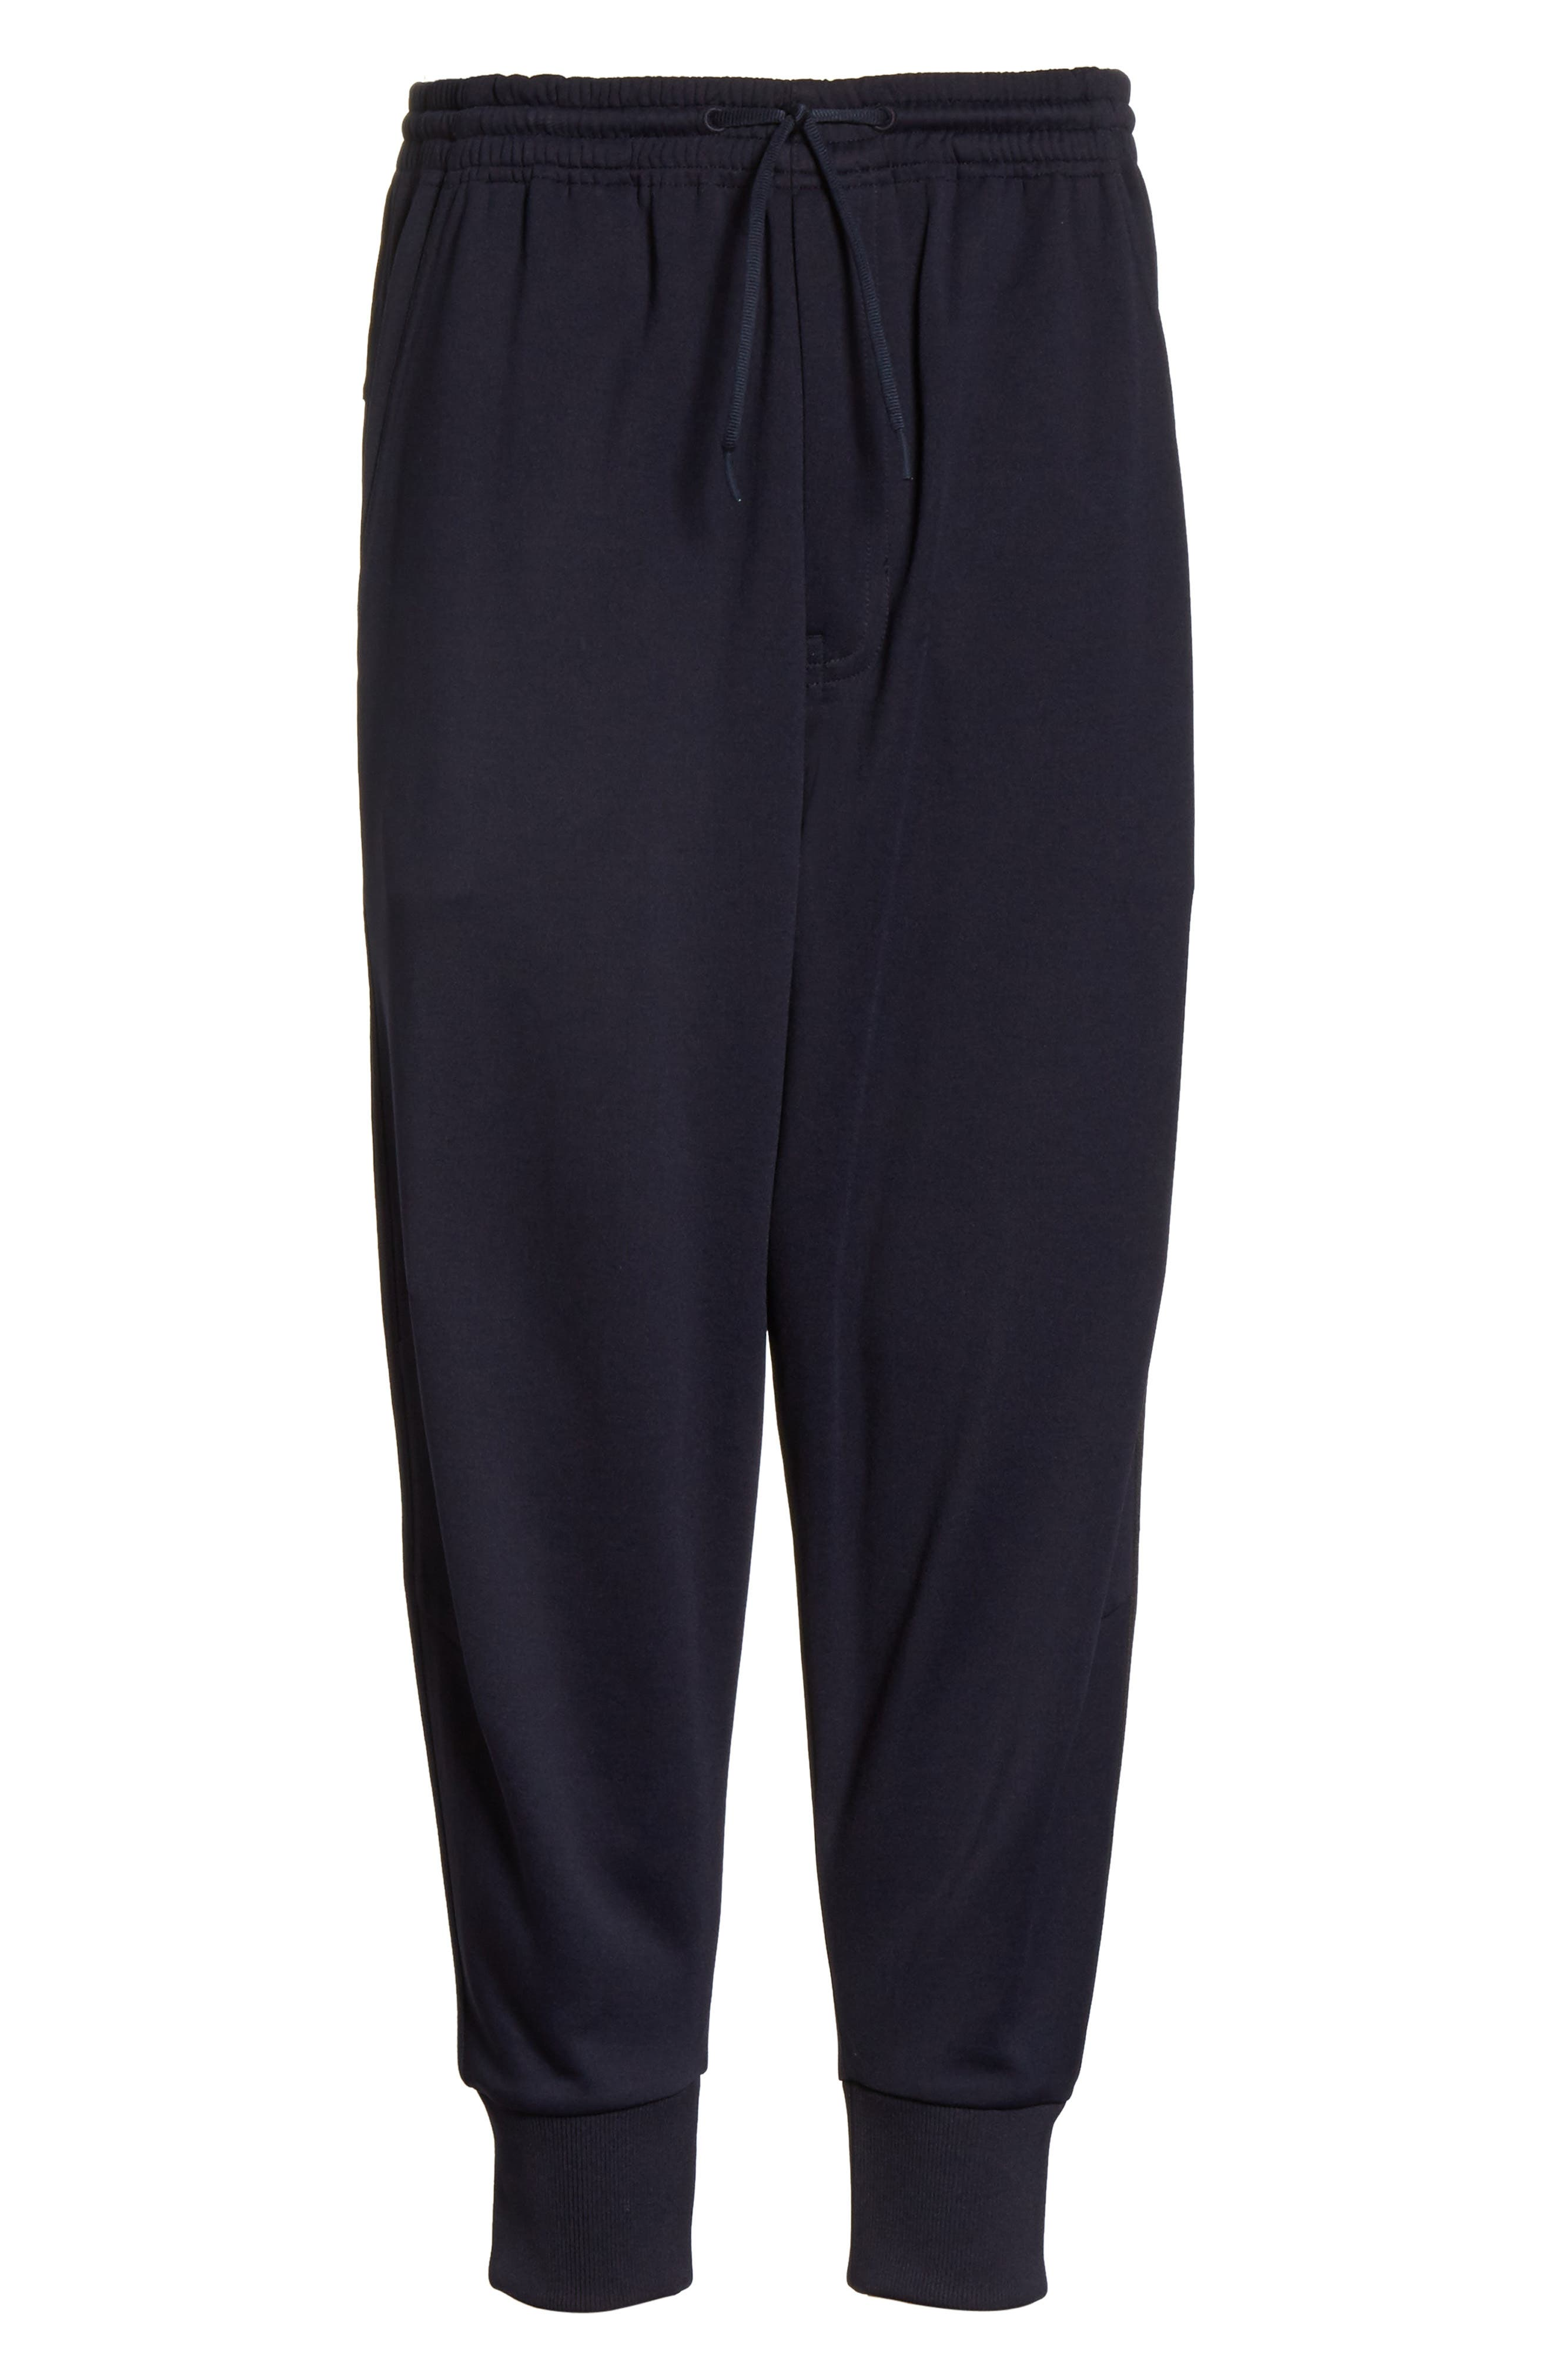 x adidas Cropped Track Pants,                             Alternate thumbnail 7, color,                             Navy